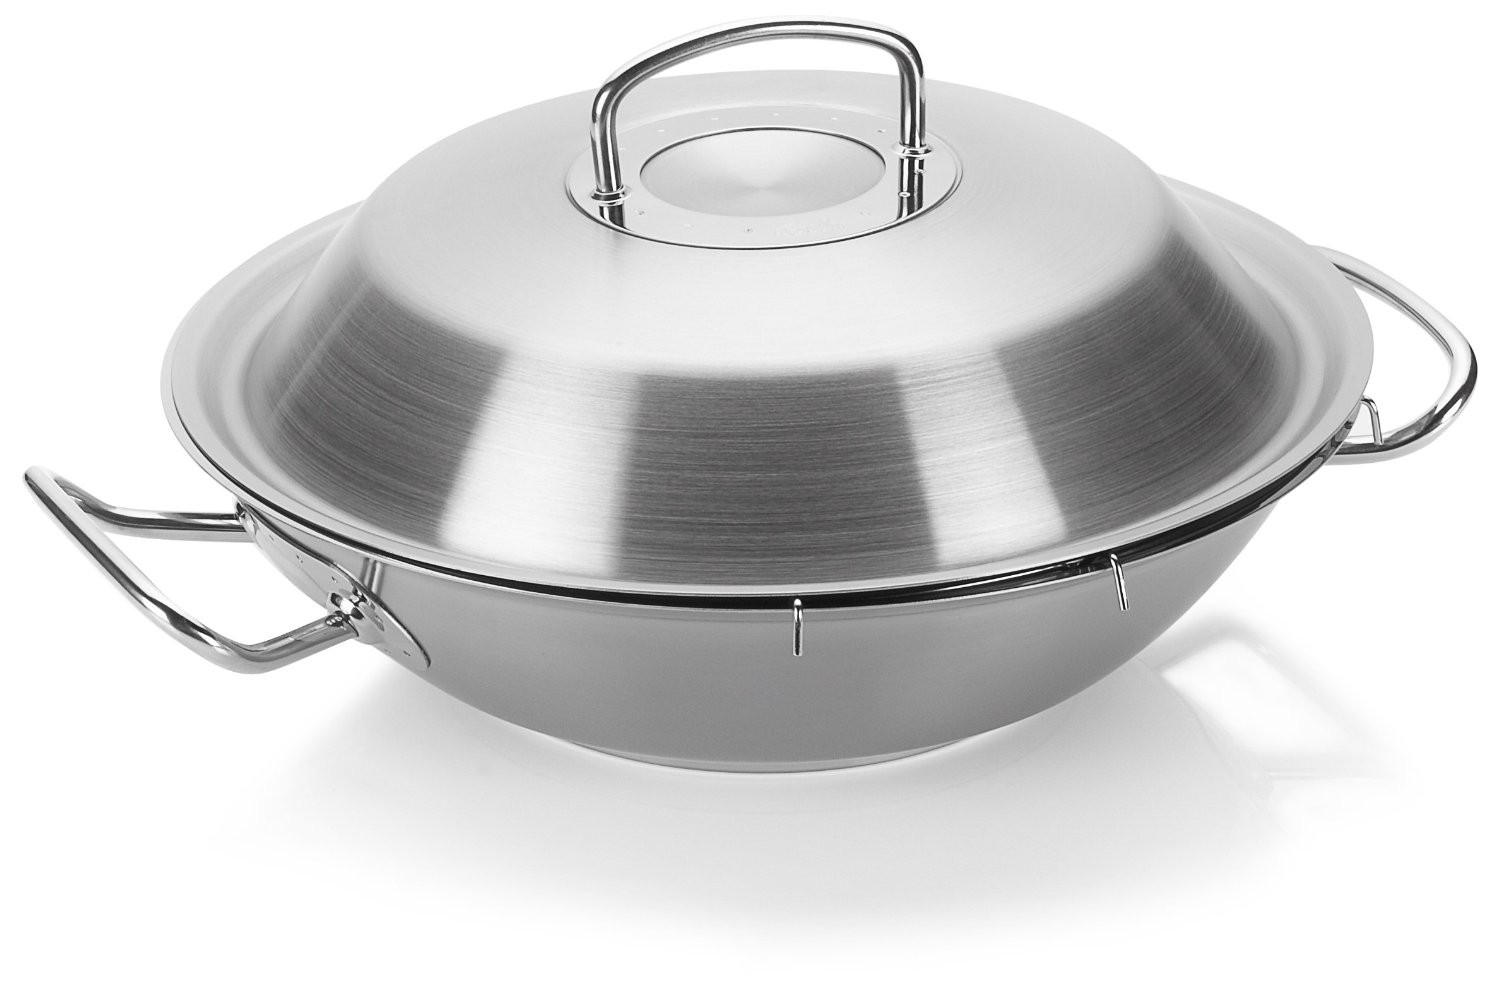 Fissler original-profi collection® Wok mit Metalldeckel 30 cm